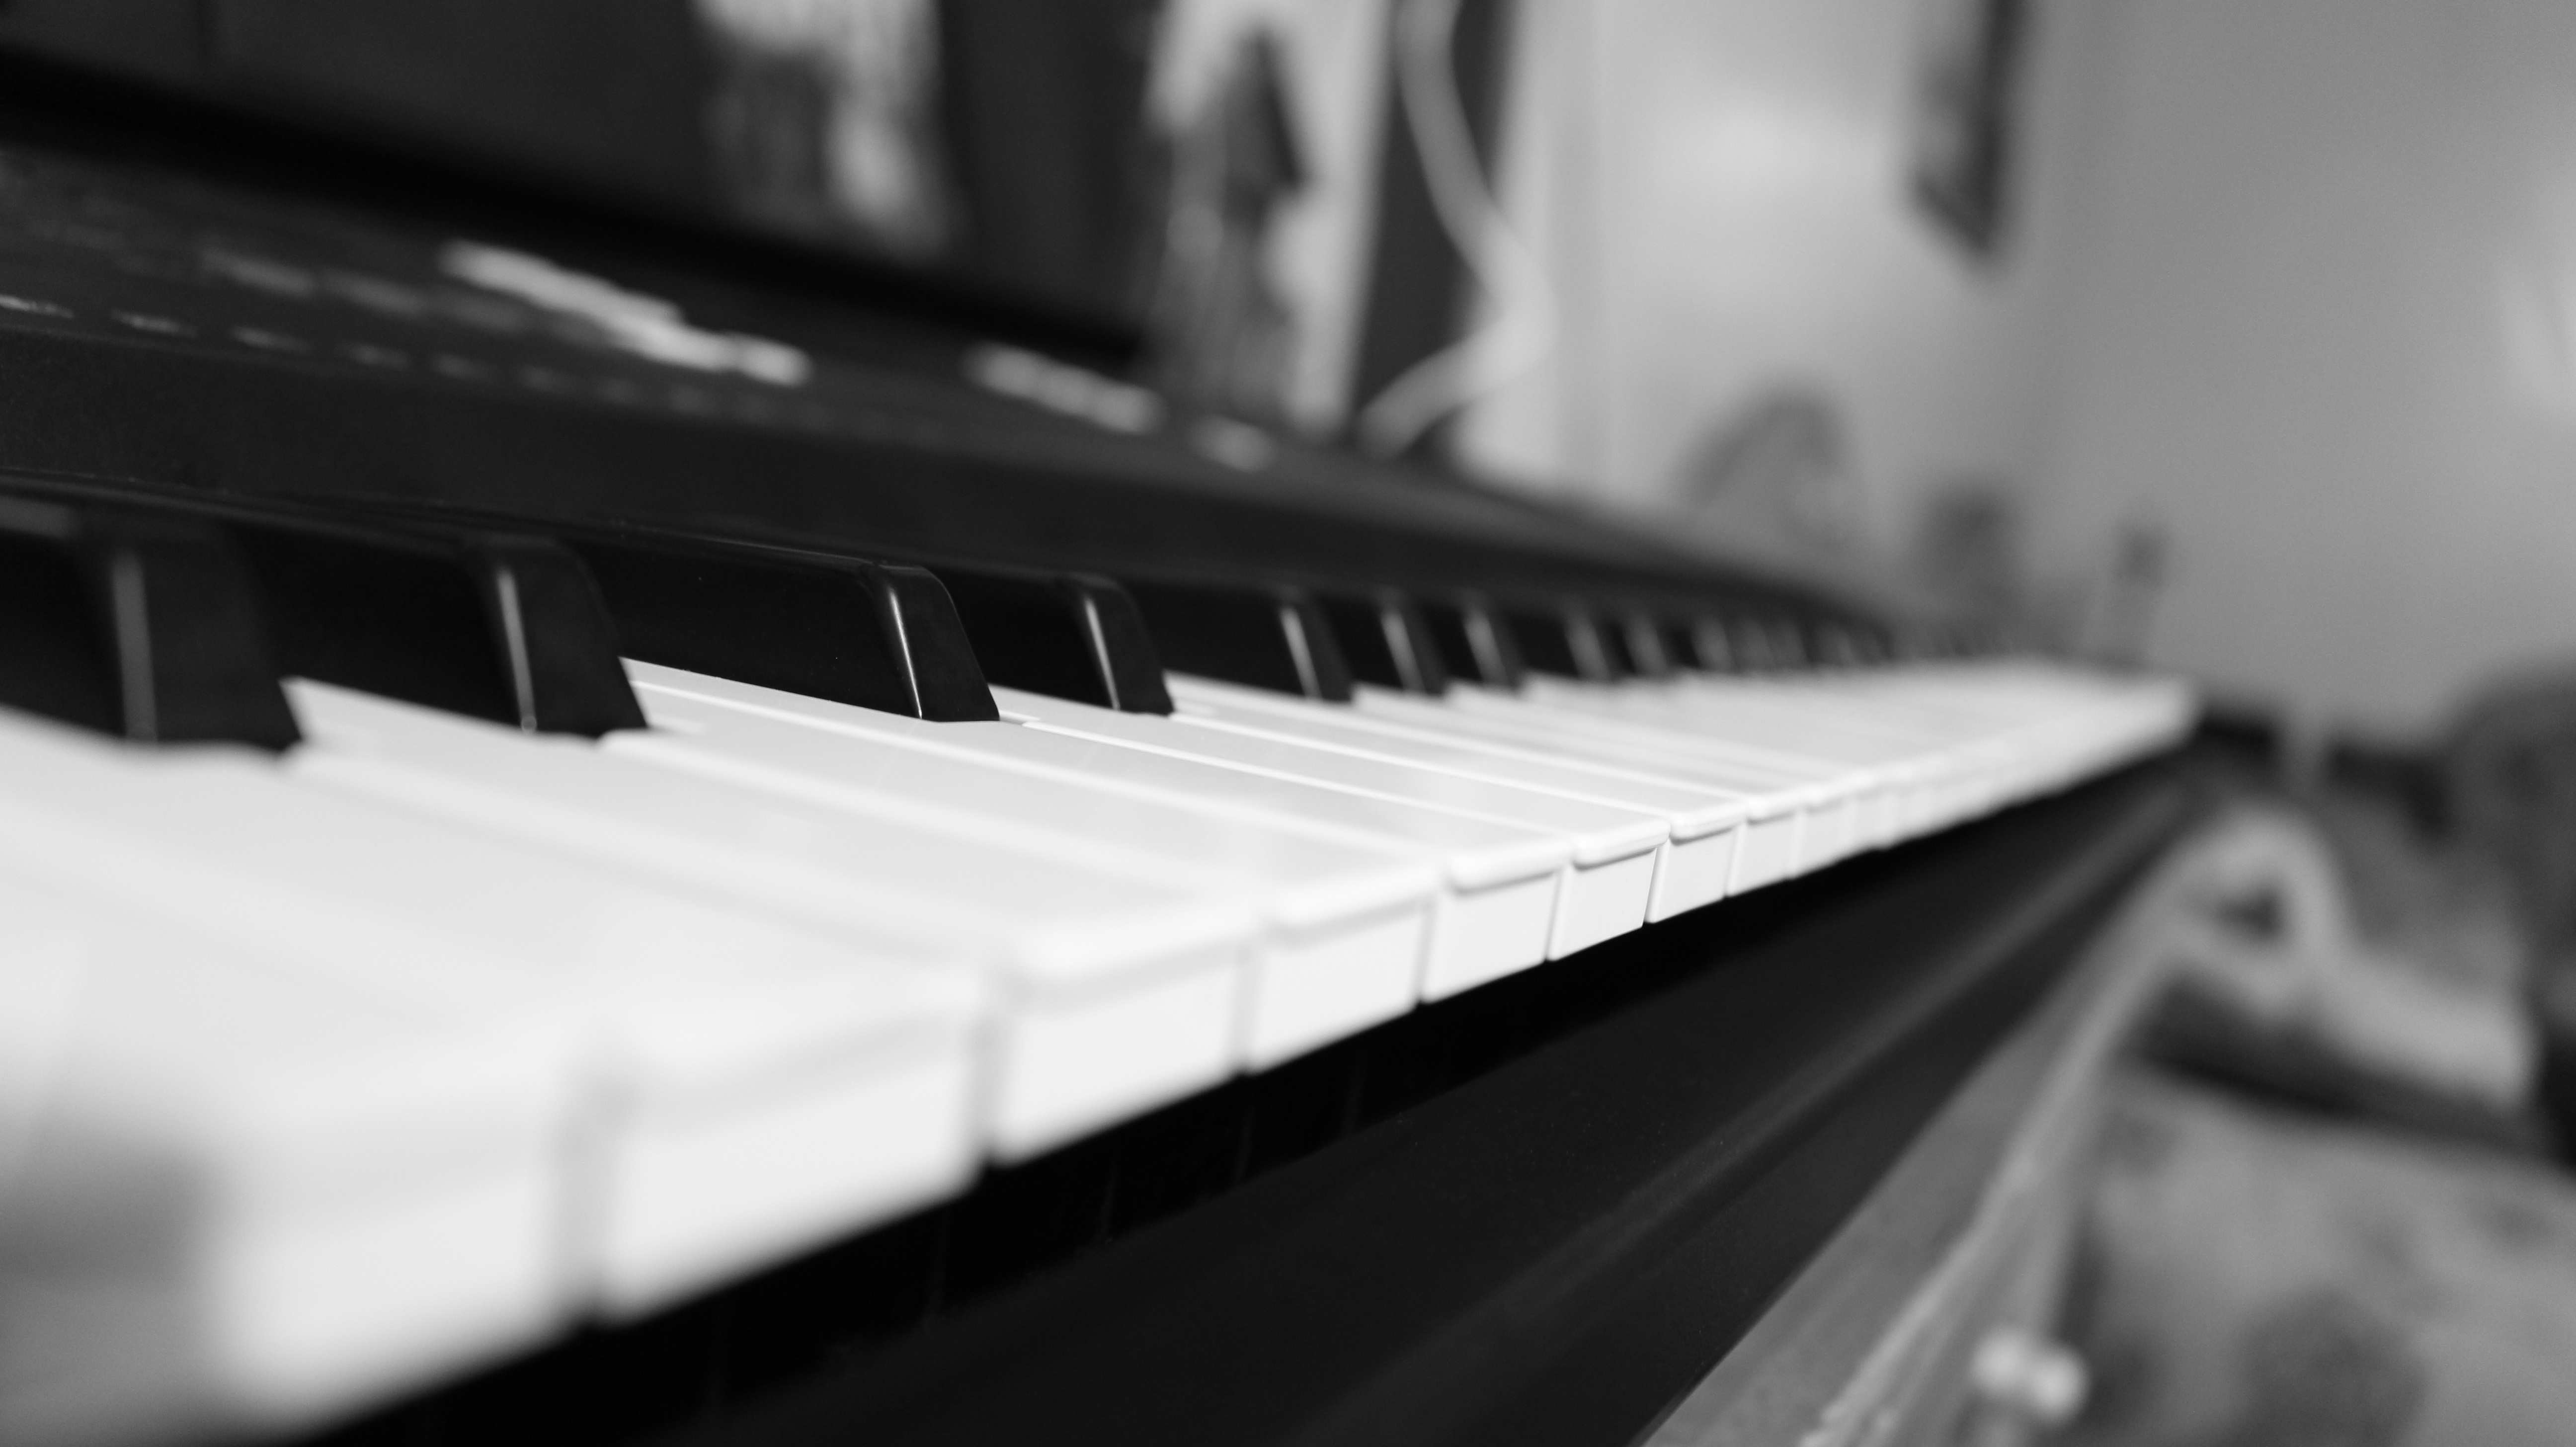 Free stock photo of black-and-white, music, piano, keyboard